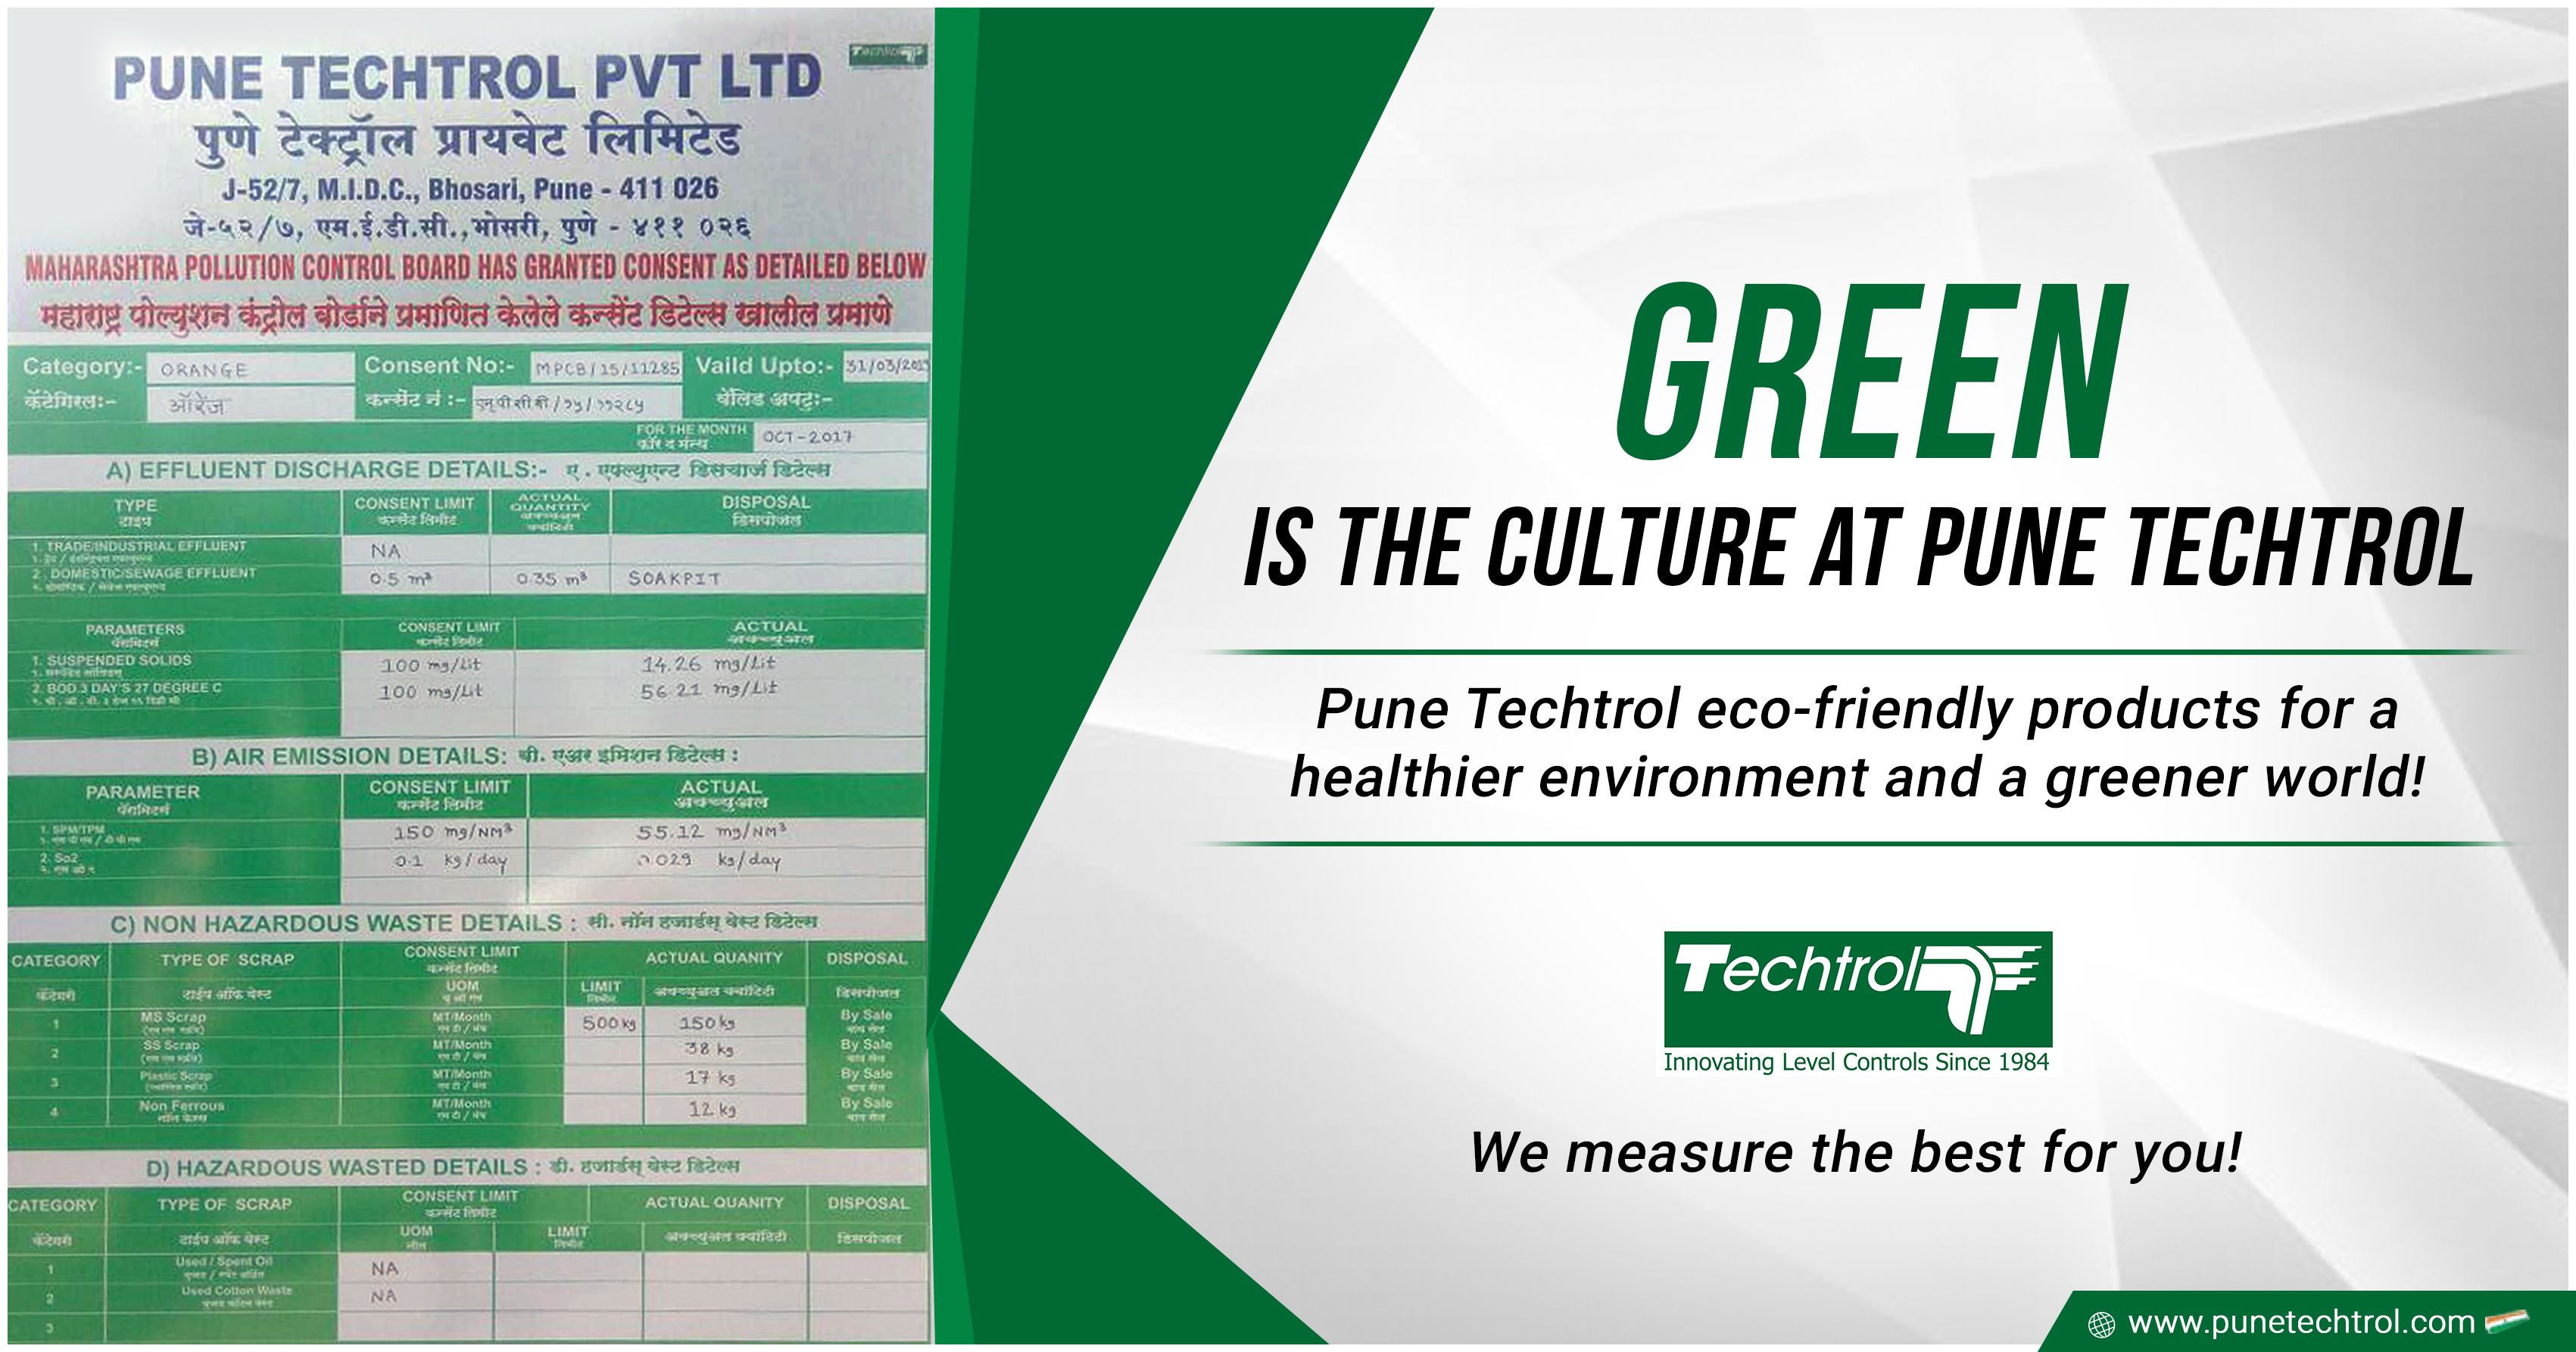 Green is the culture at Pune Techtrol certified as a Green Channel Supplier